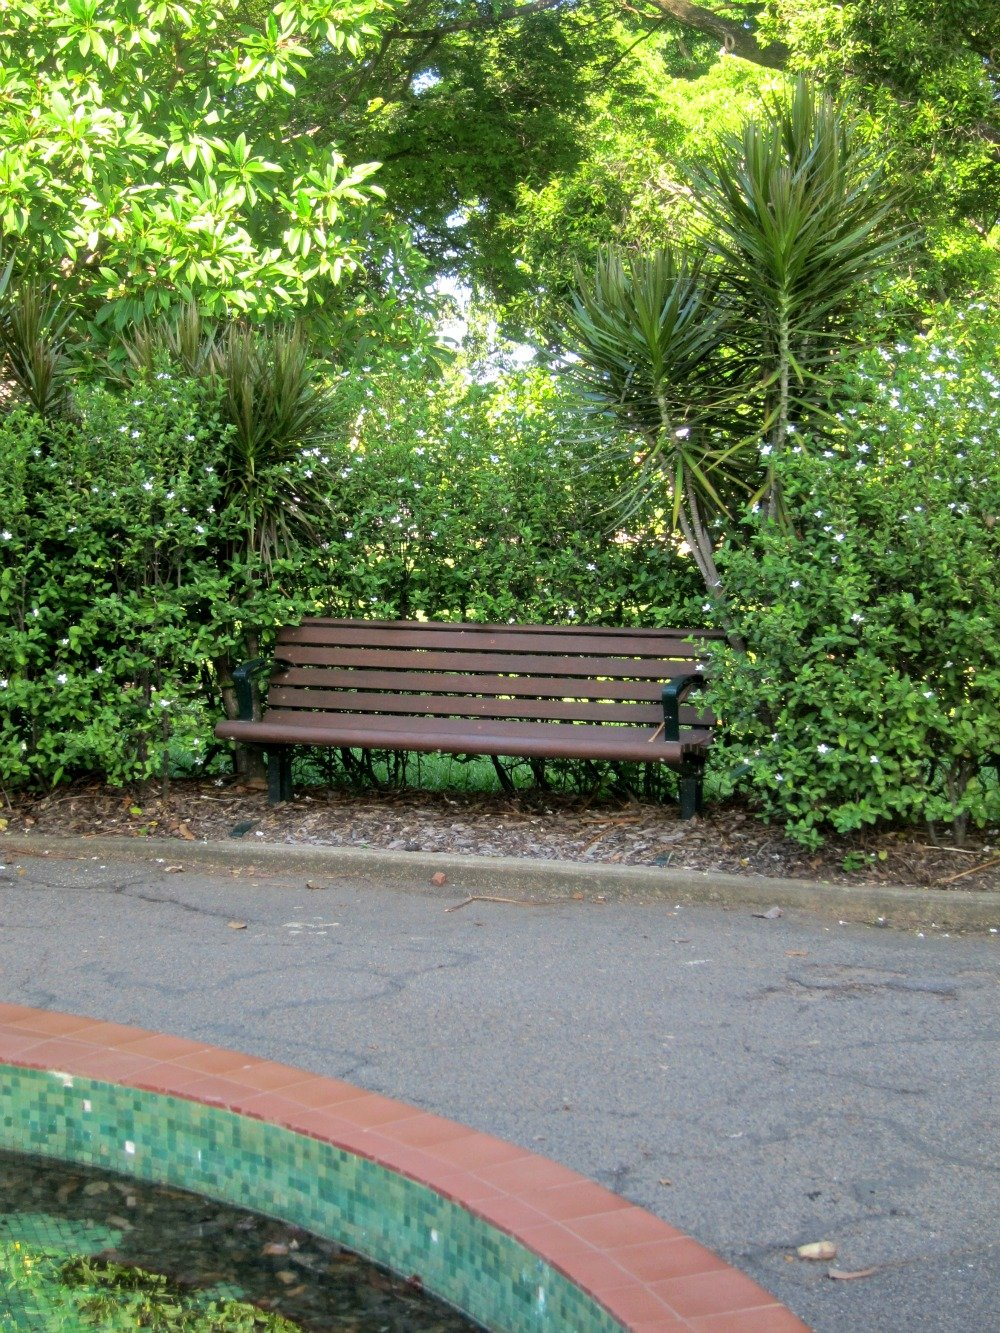 A seat to watch the children enter the mazes.